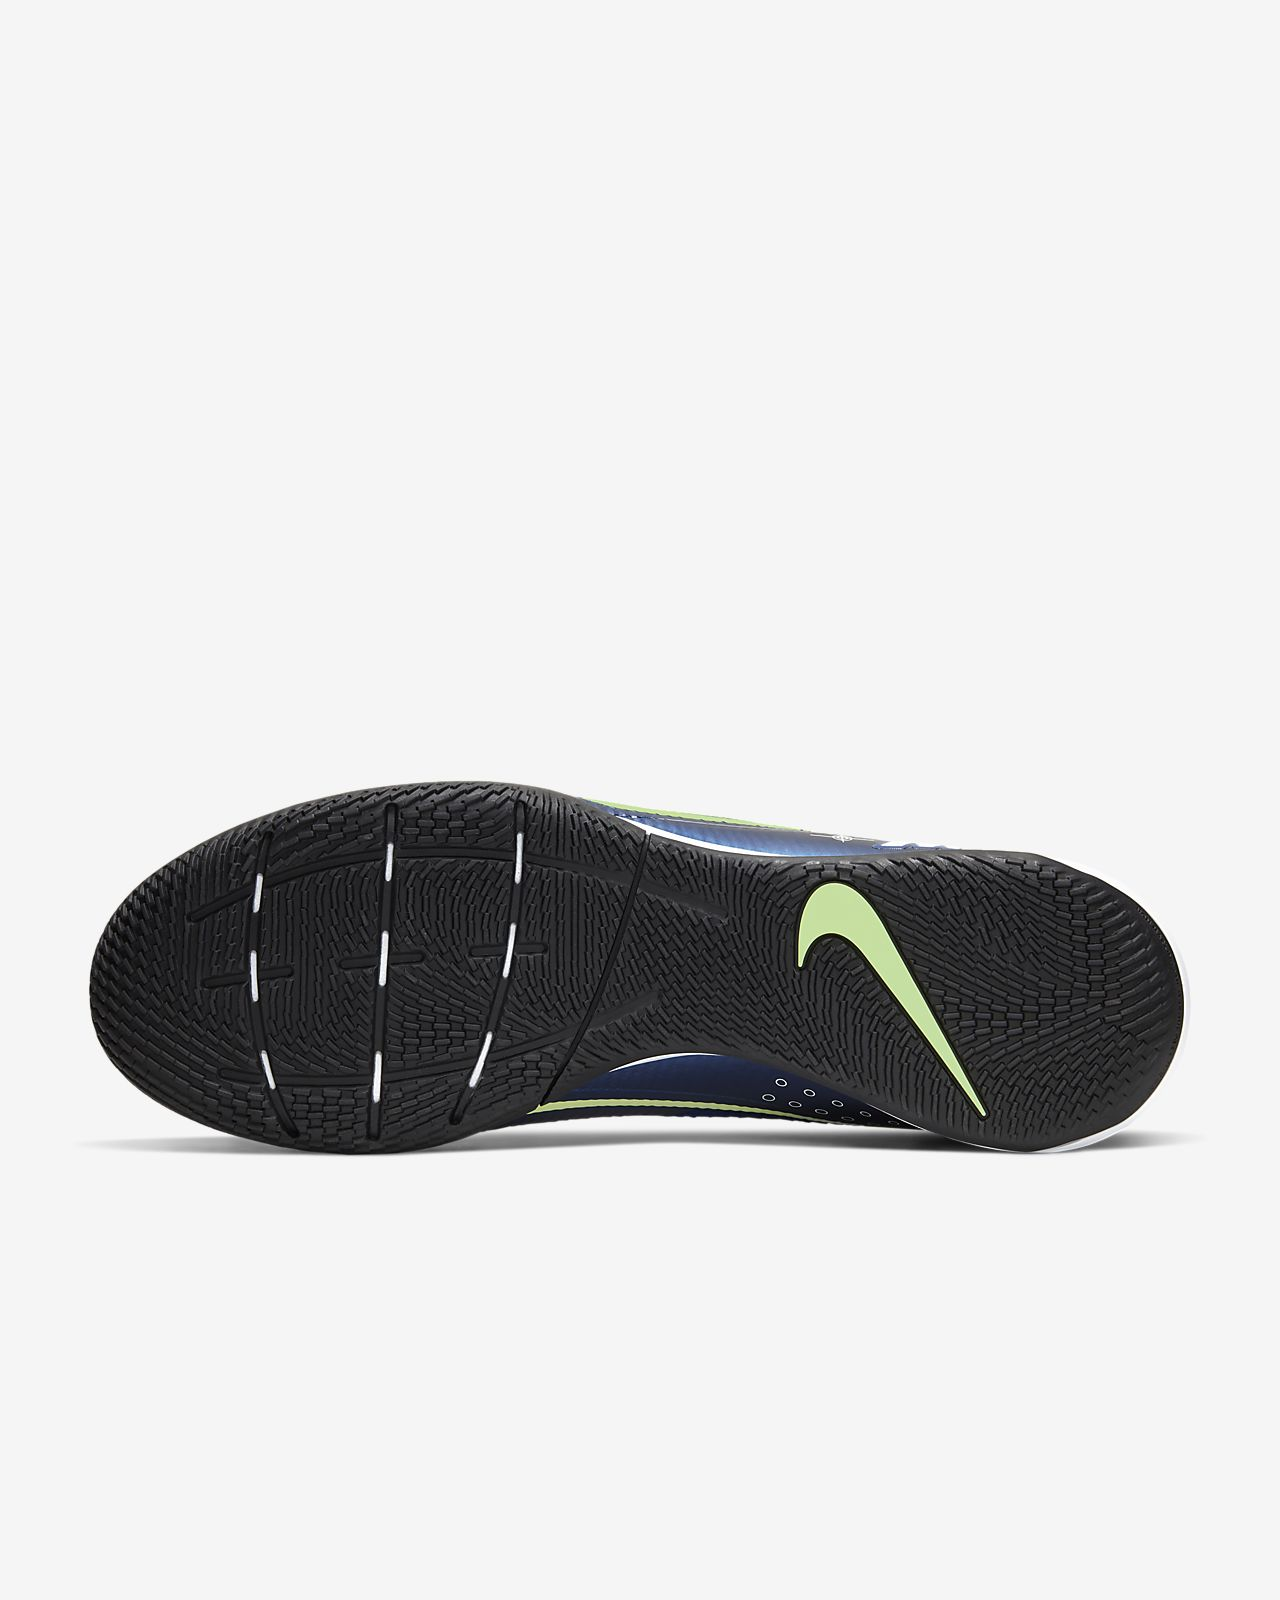 Nike Mercurial Superfly 7 Elite MDS IC IndoorCourt Soccer Shoe